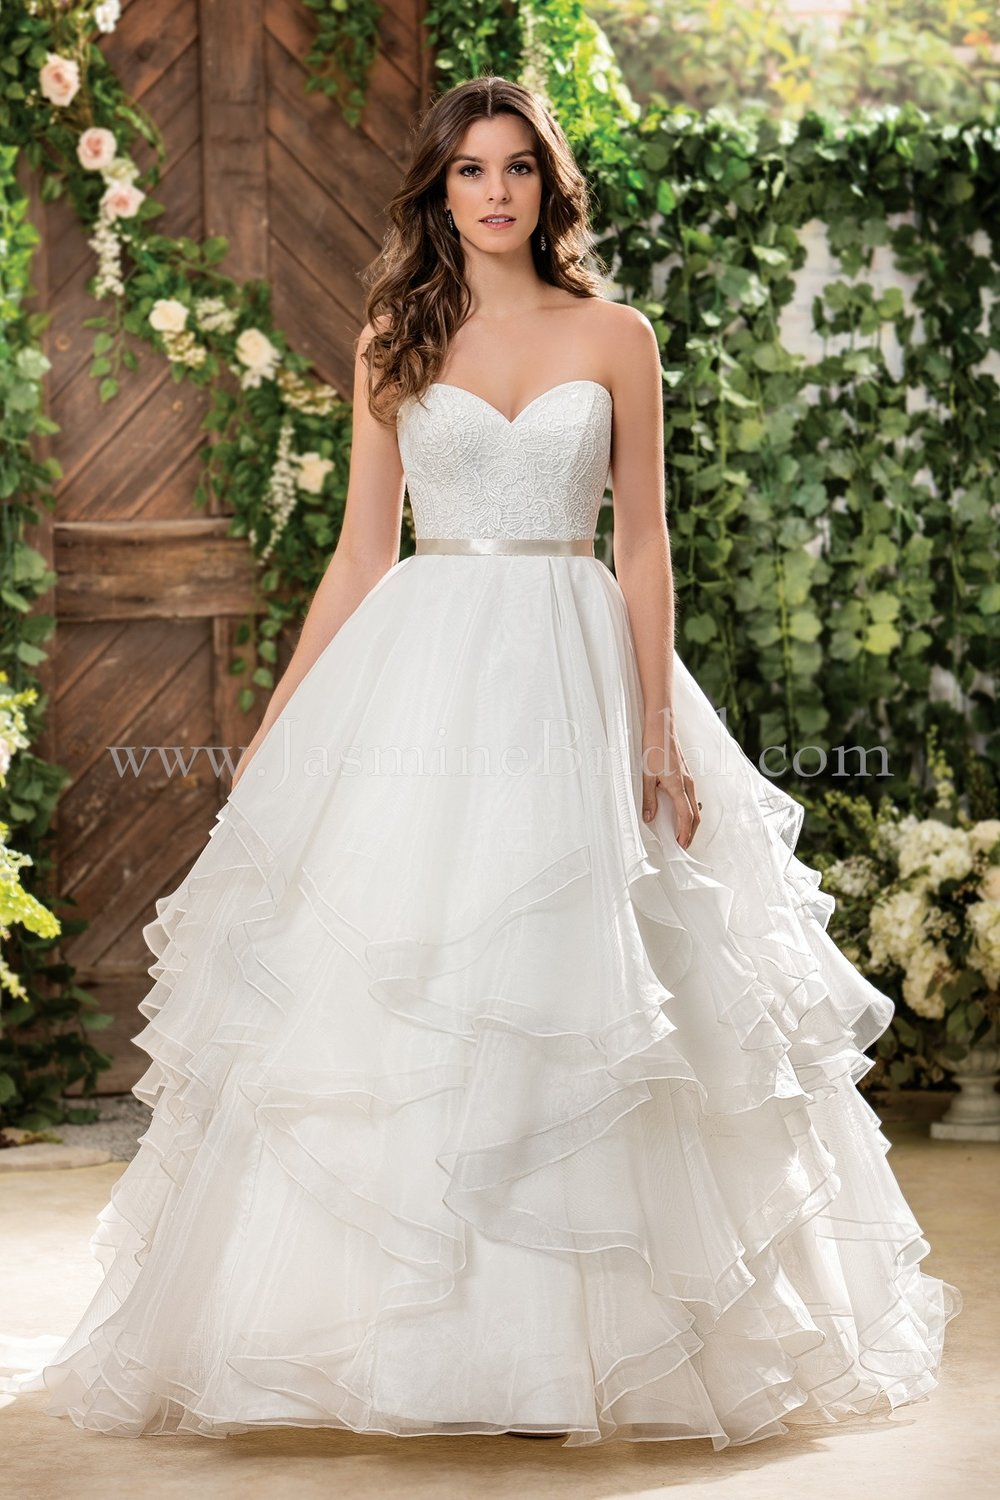 Jasmine Bridal 181068  size 14              Call for Pricing